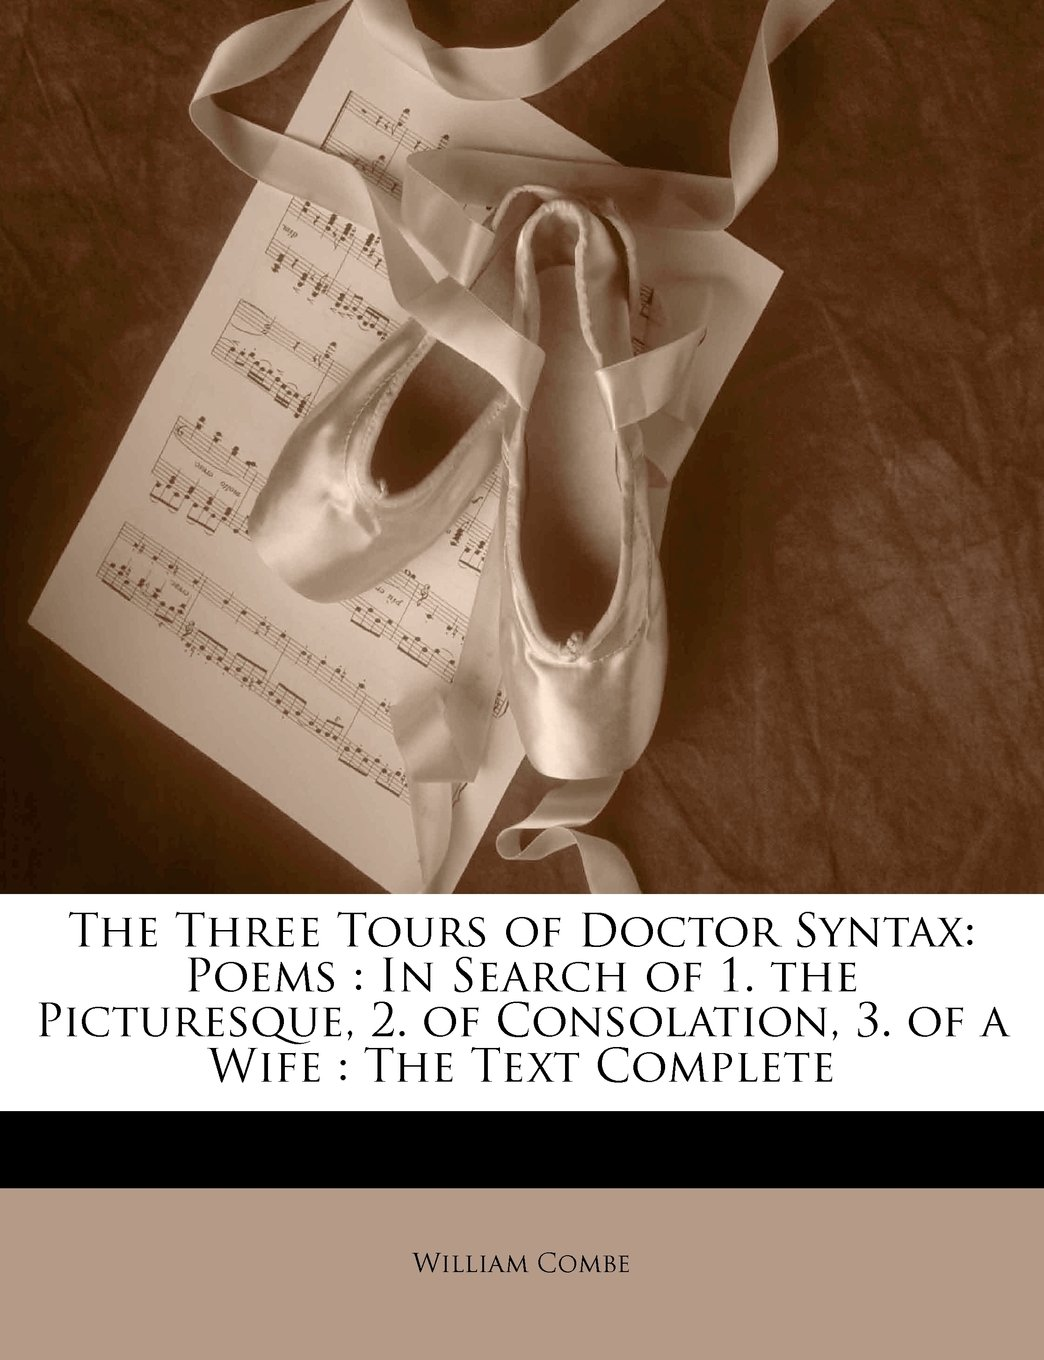 The Three Tours of Doctor Syntax: Poems : In Search of 1. the Picturesque, 2. of Consolation, 3. of a Wife : The Text Complete William Combe